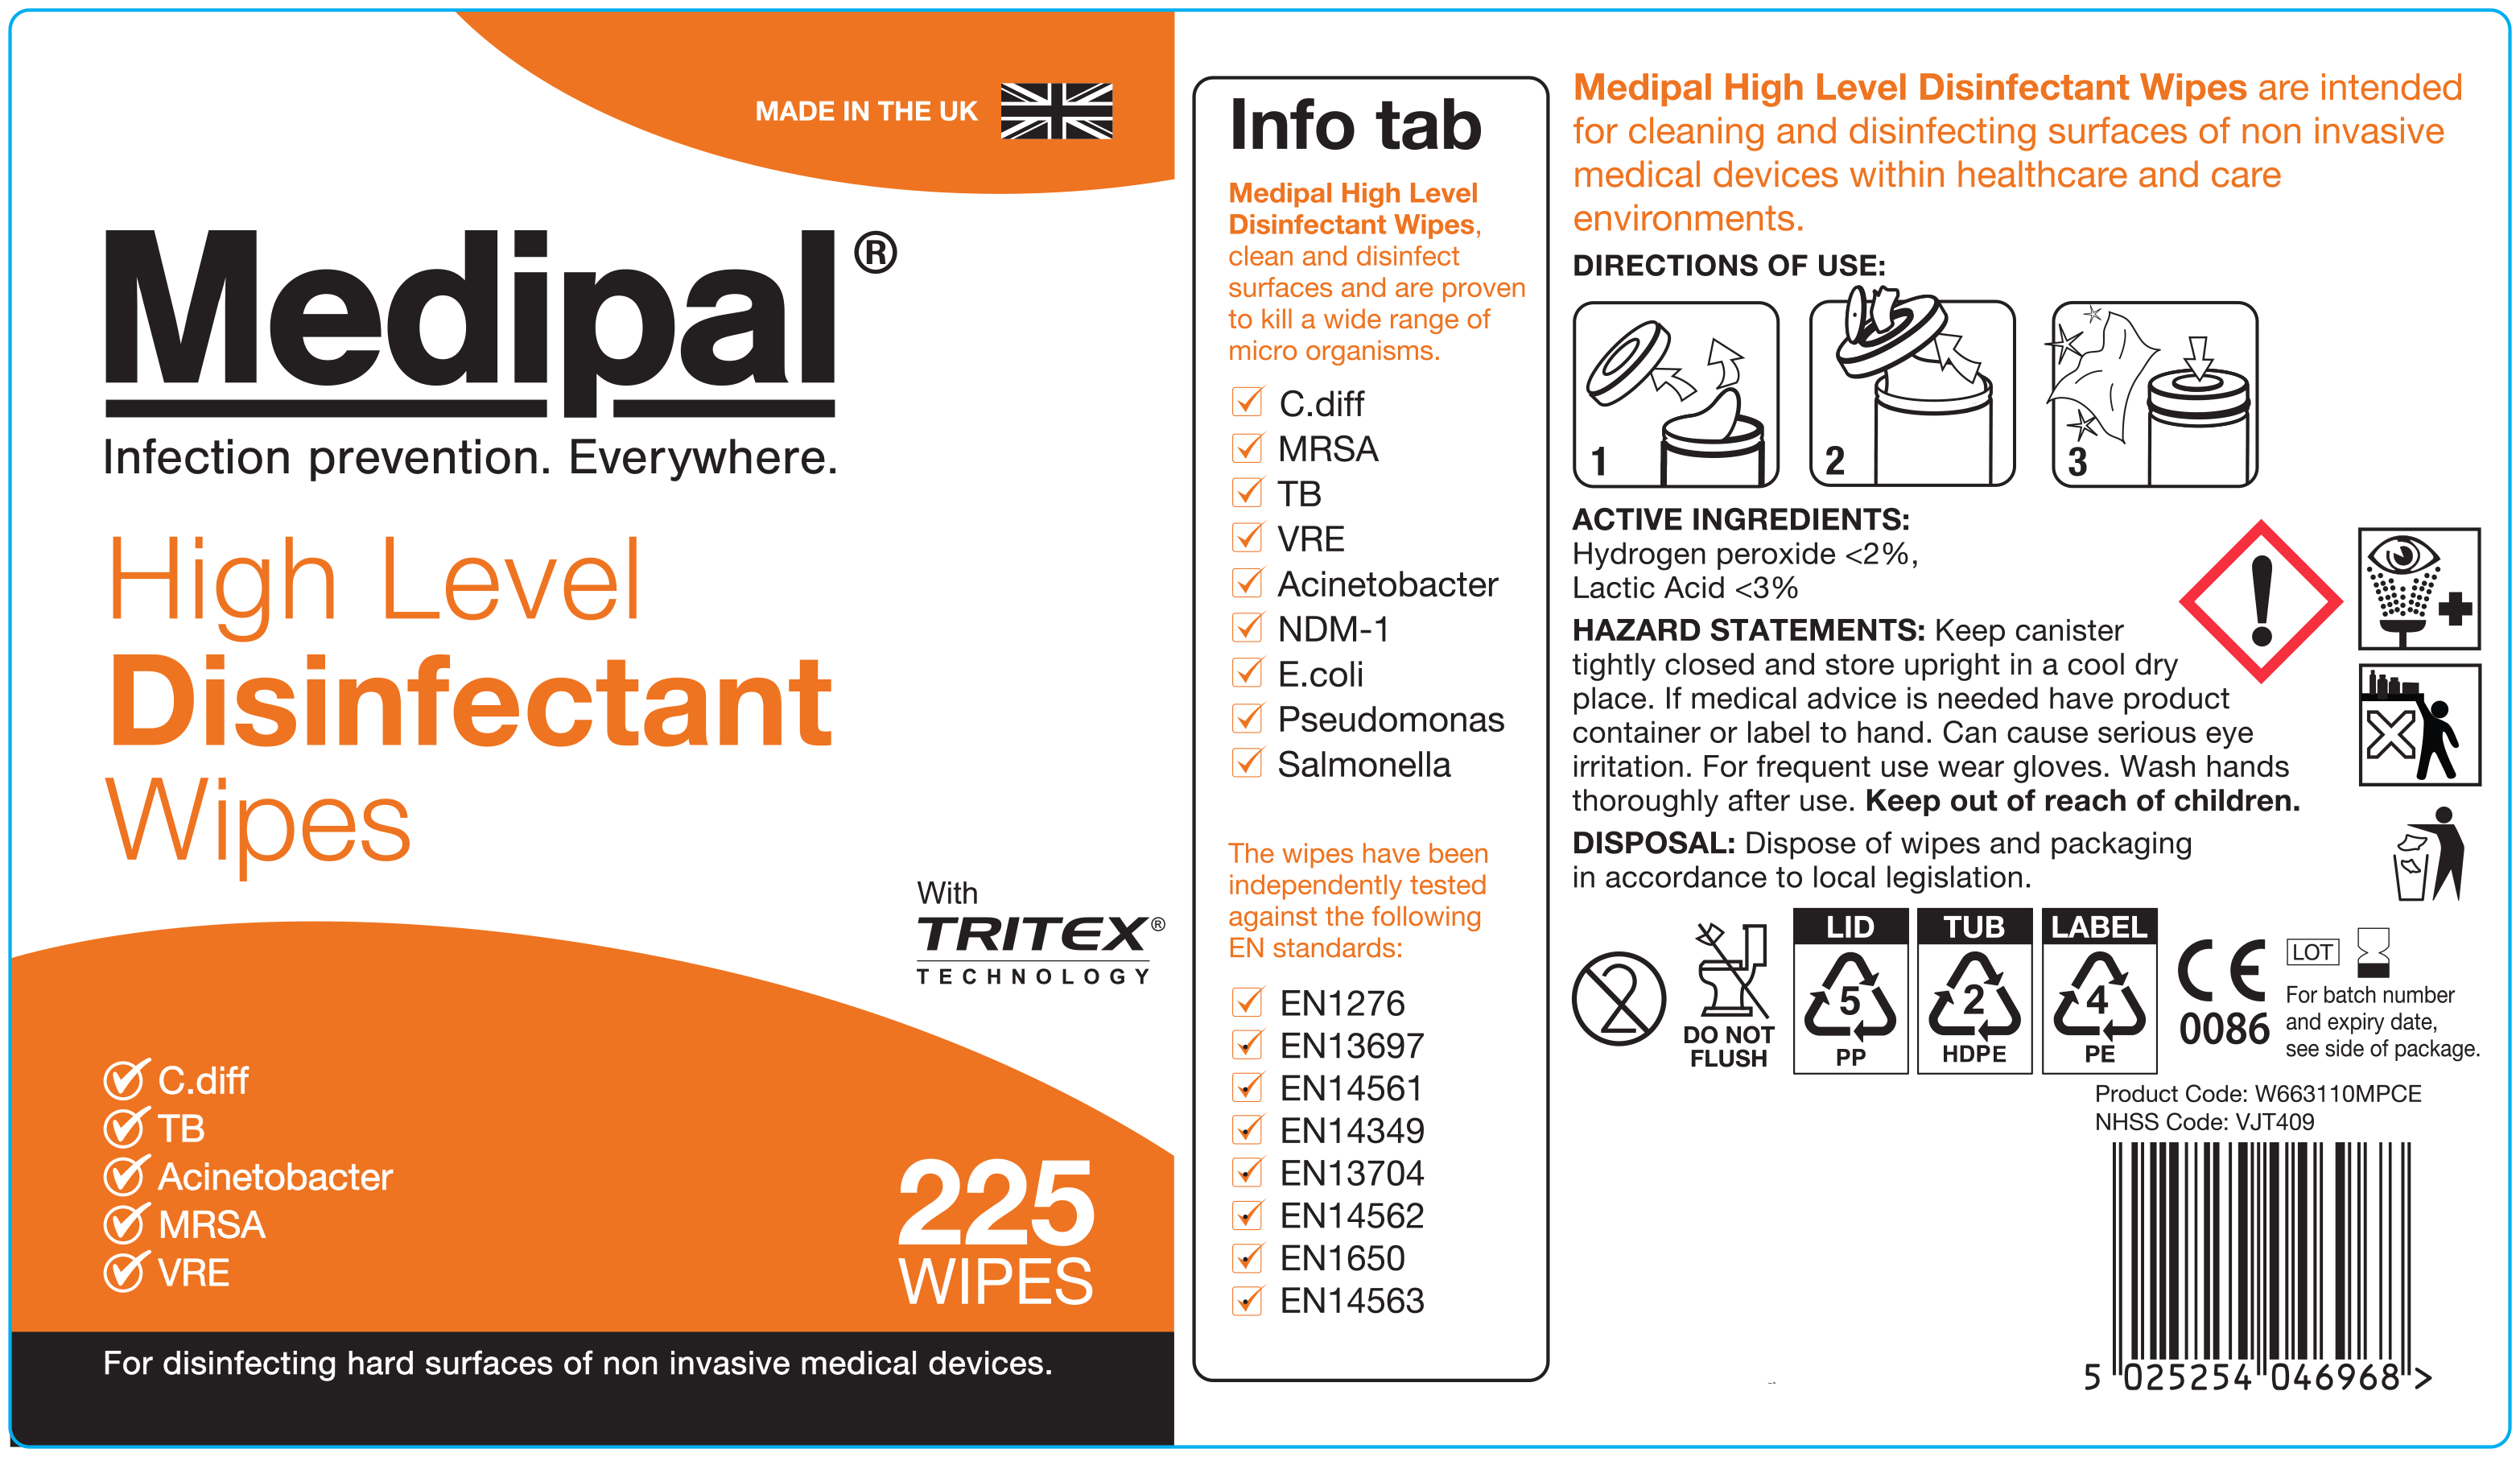 label products